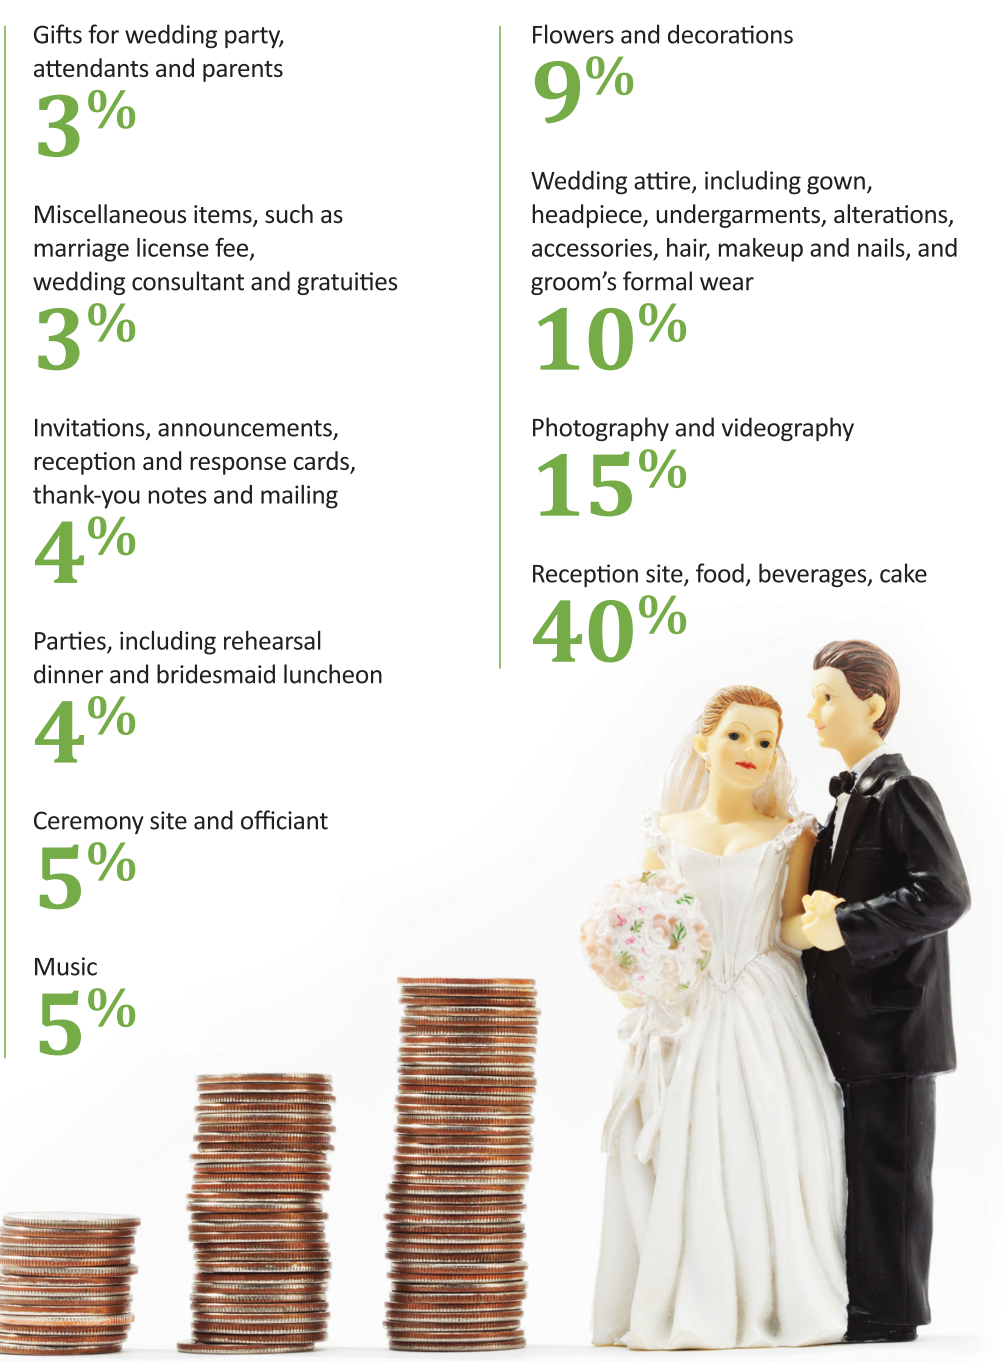 How much will this wedding cost? - Capital_City_Wedding